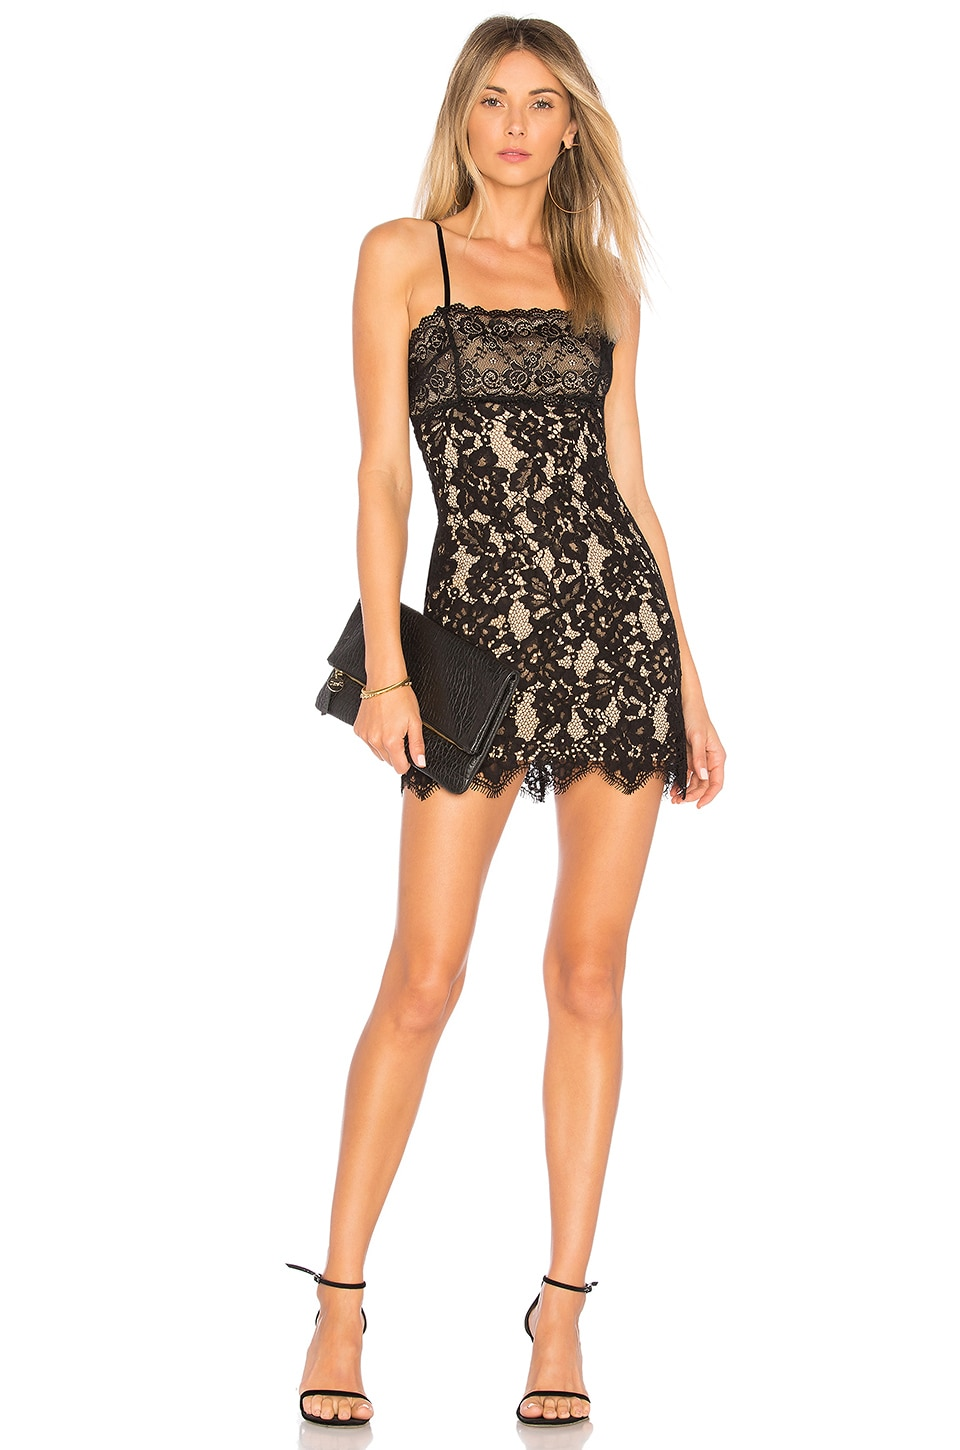 MAJORELLE Apollo Dress in Black